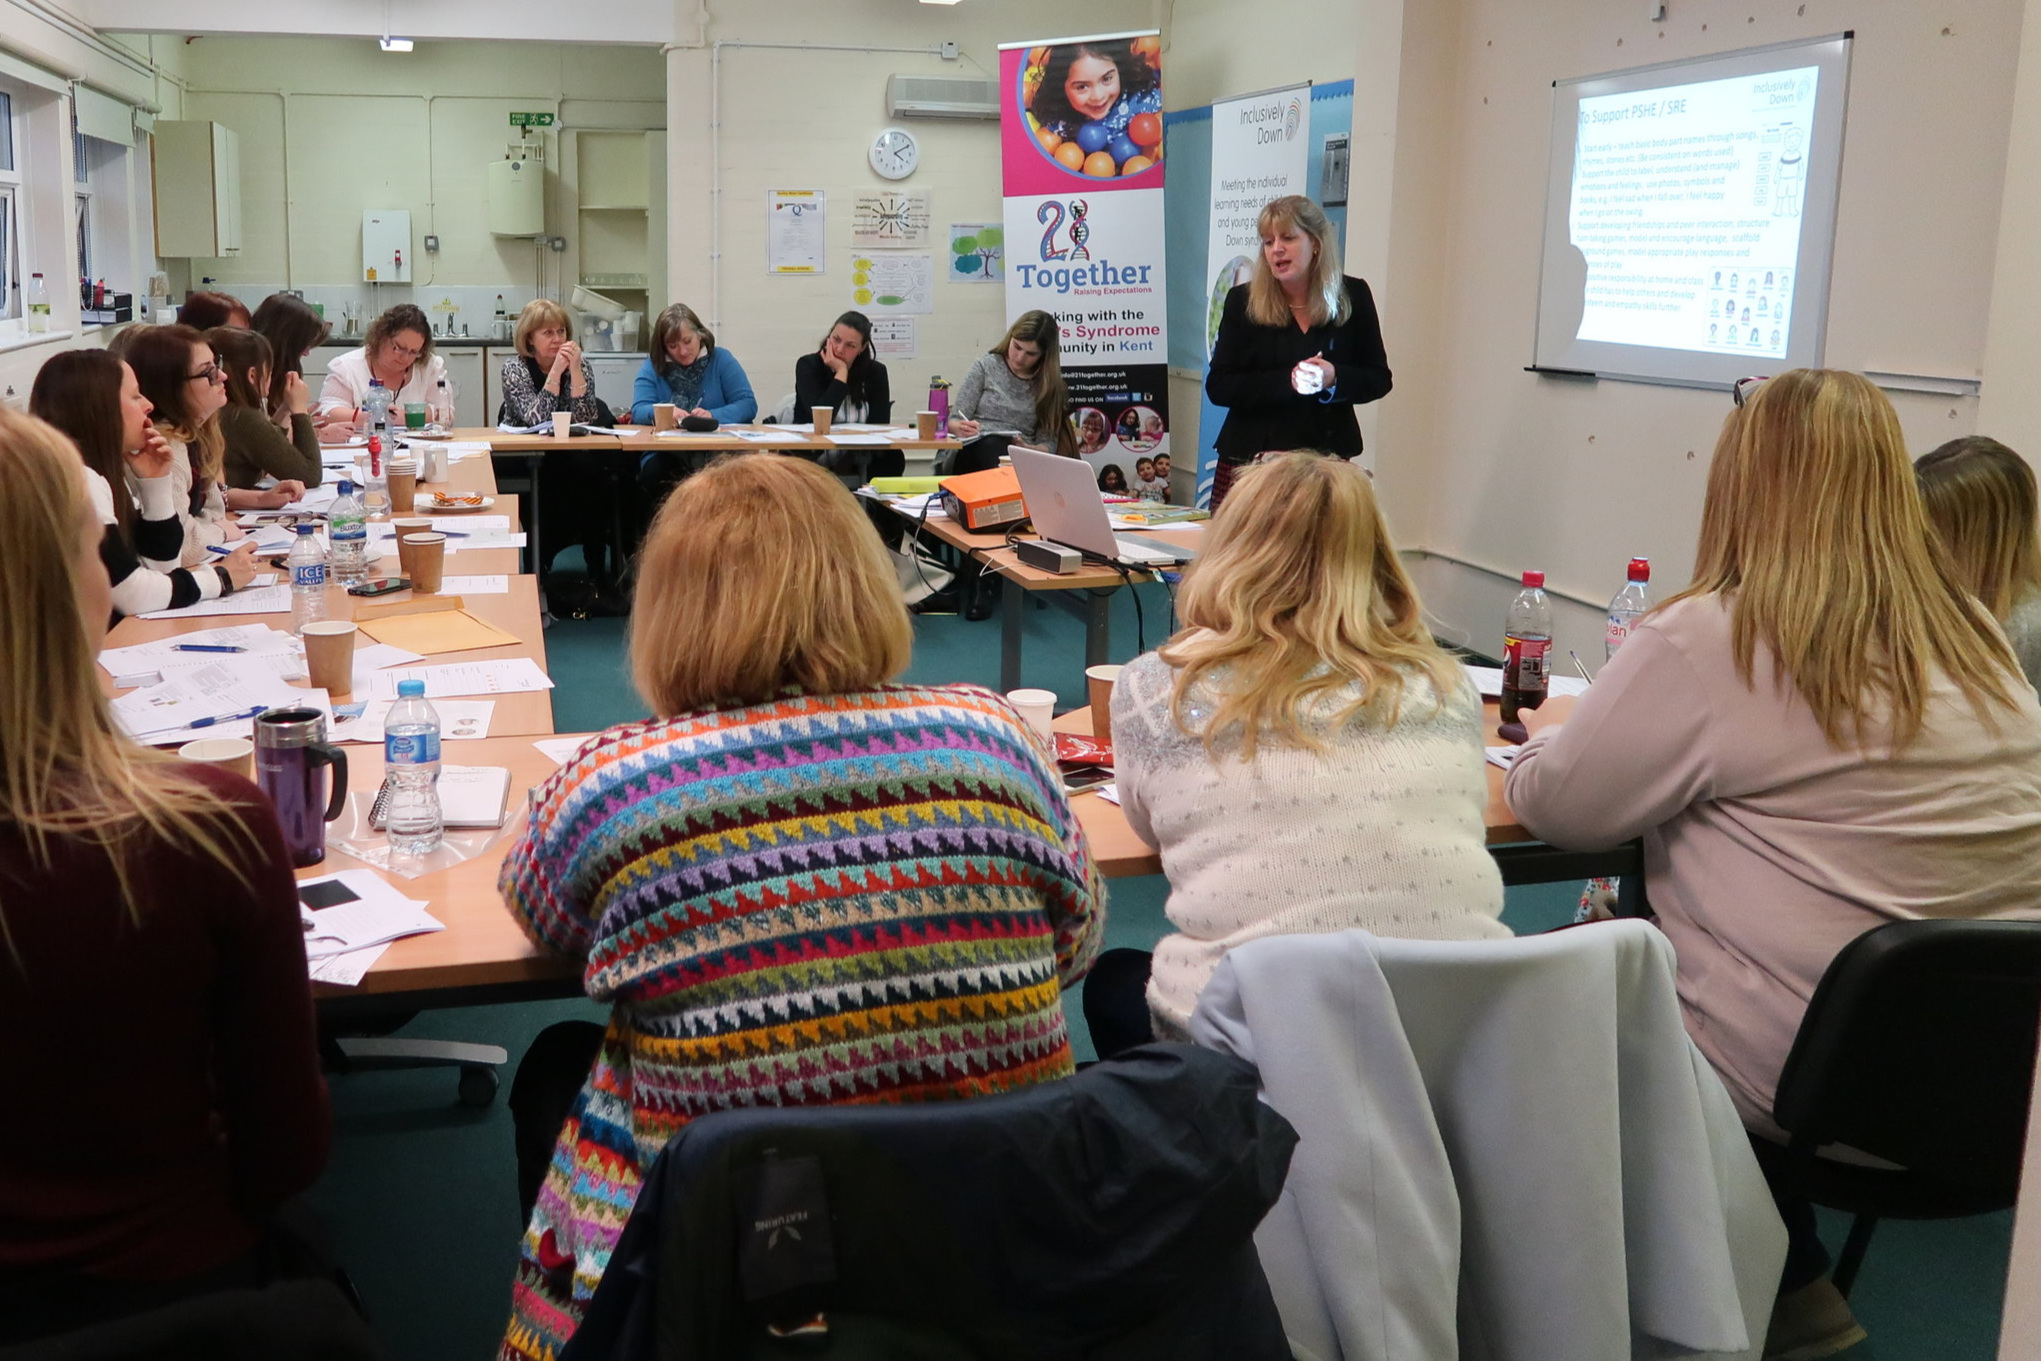 Training - Local, accessible training for parents, carers and professionals…